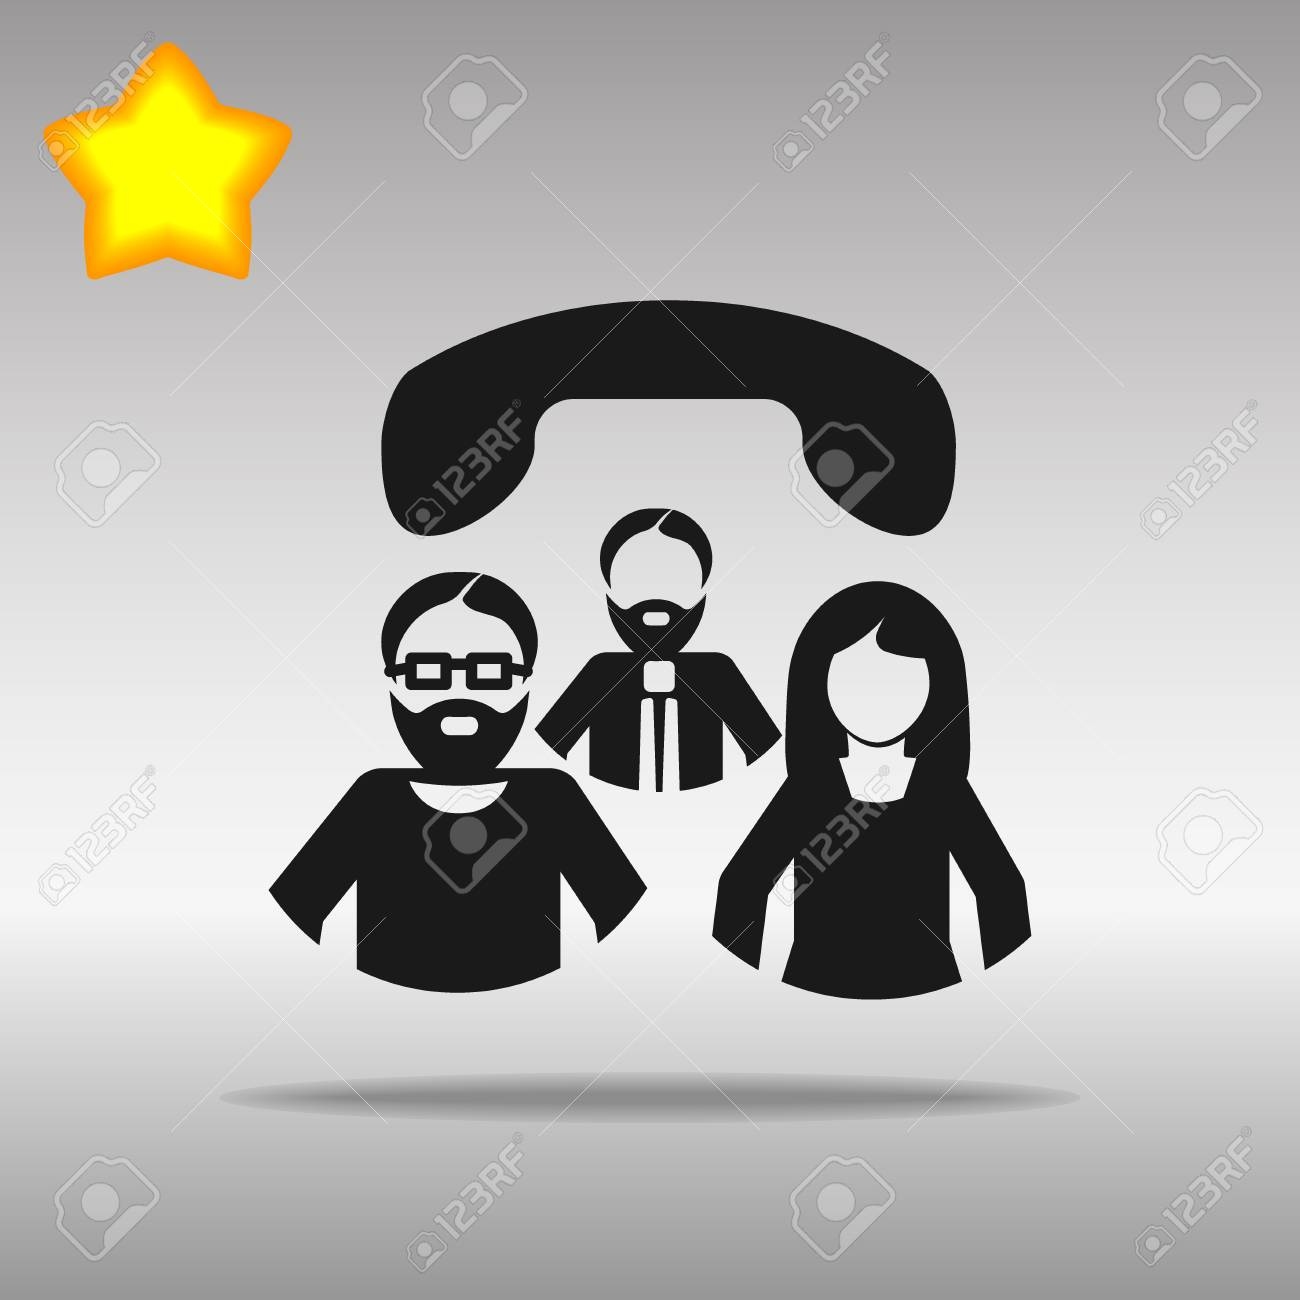 Conference call black Icon button logo symbol concept high quality on the gray background - 82176380